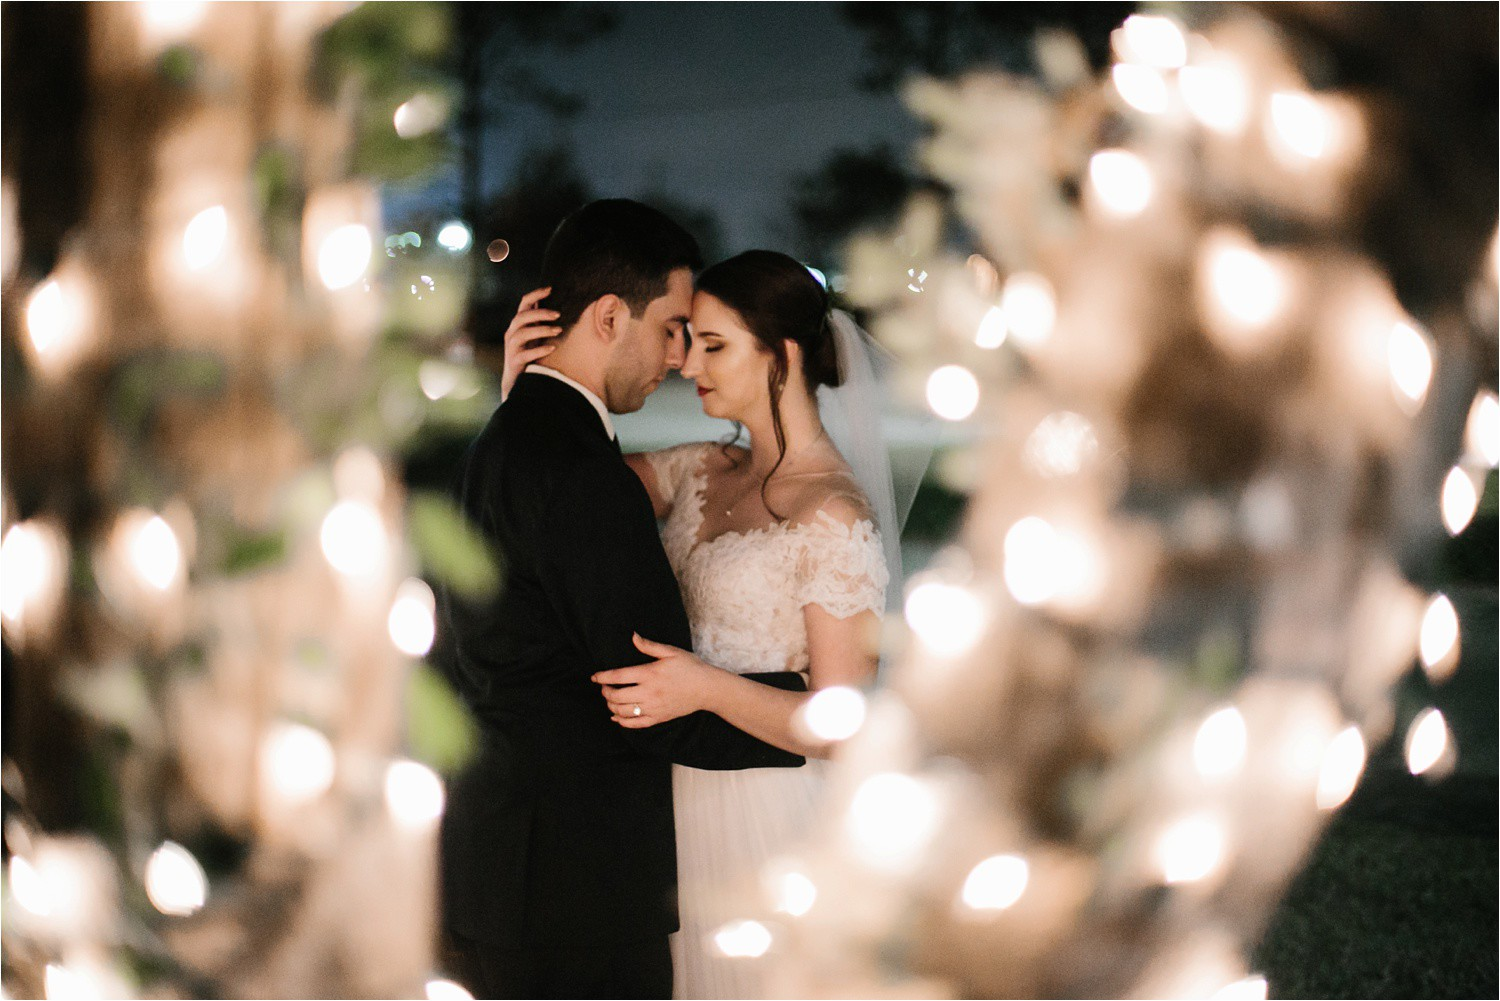 Alaina + Josh __ a wintertime wedding in Houston, TX with Christmas accents and a BHLDN dress by North Texas Wedding Photographer Rachel Meagan Photography _ 52